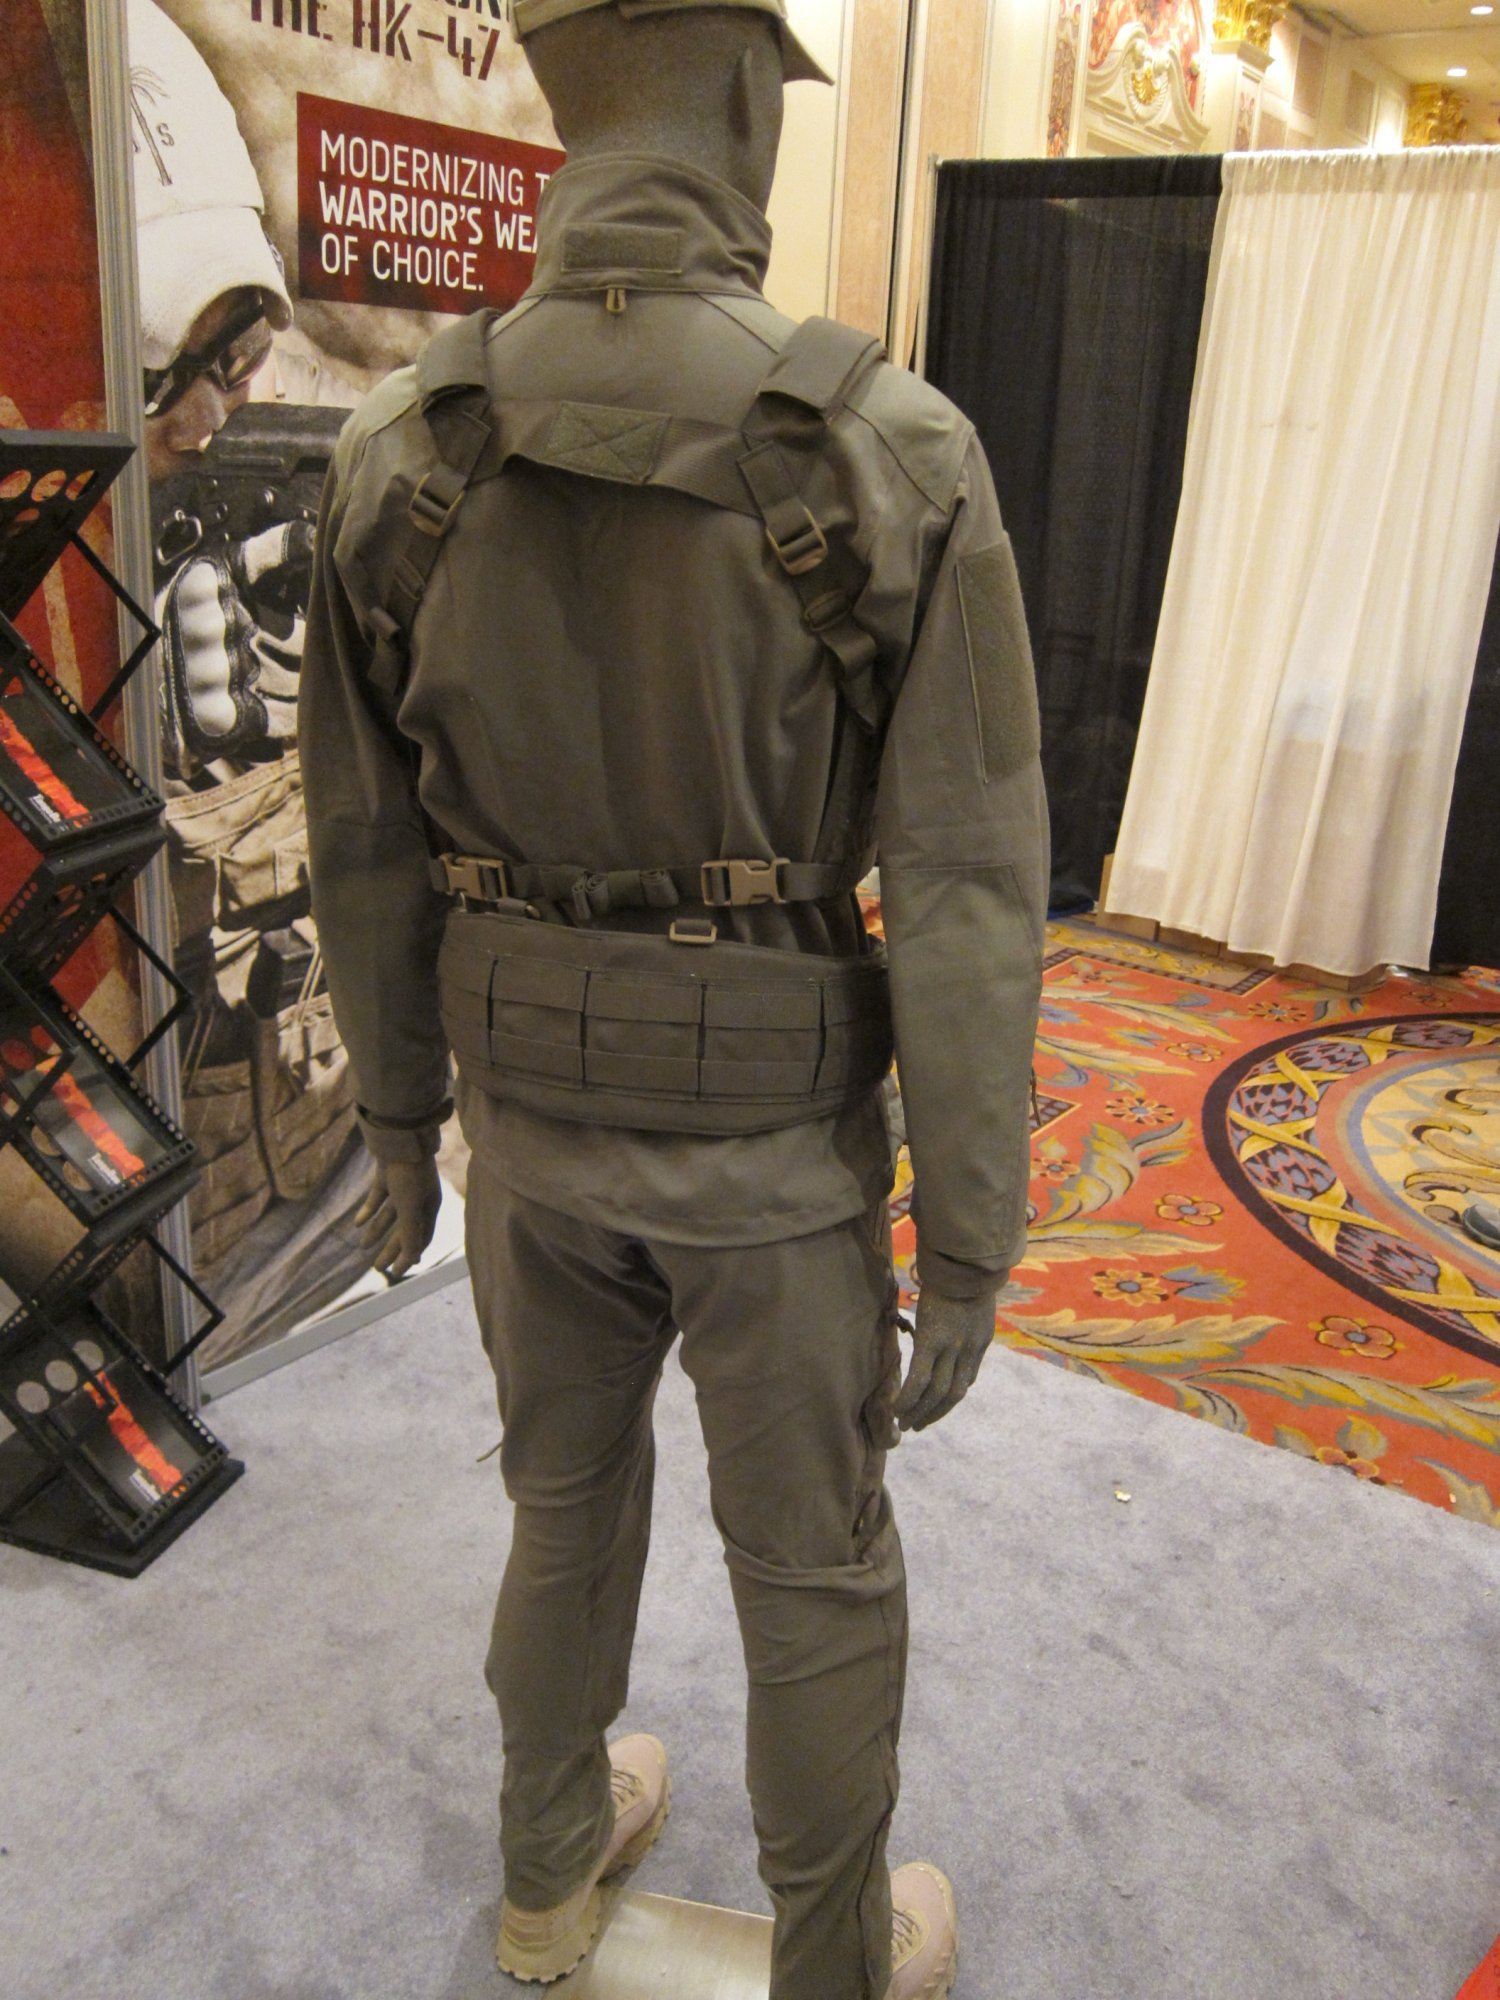 SOD Gear Special Operations Department Gear Max Valente Italian Tactical Combat Clothing TangoDown SHOT Show 2012 1 17 2012 DefenseReview.com DR 6 SOD Gear/SOD USA Stealth ADP Battle Jacket and Pants Made with Schoeller Performance Fabric: High Tech Combat Clothing for Military Special Operations Forces (SOF) and Civilian Tactical Shooters